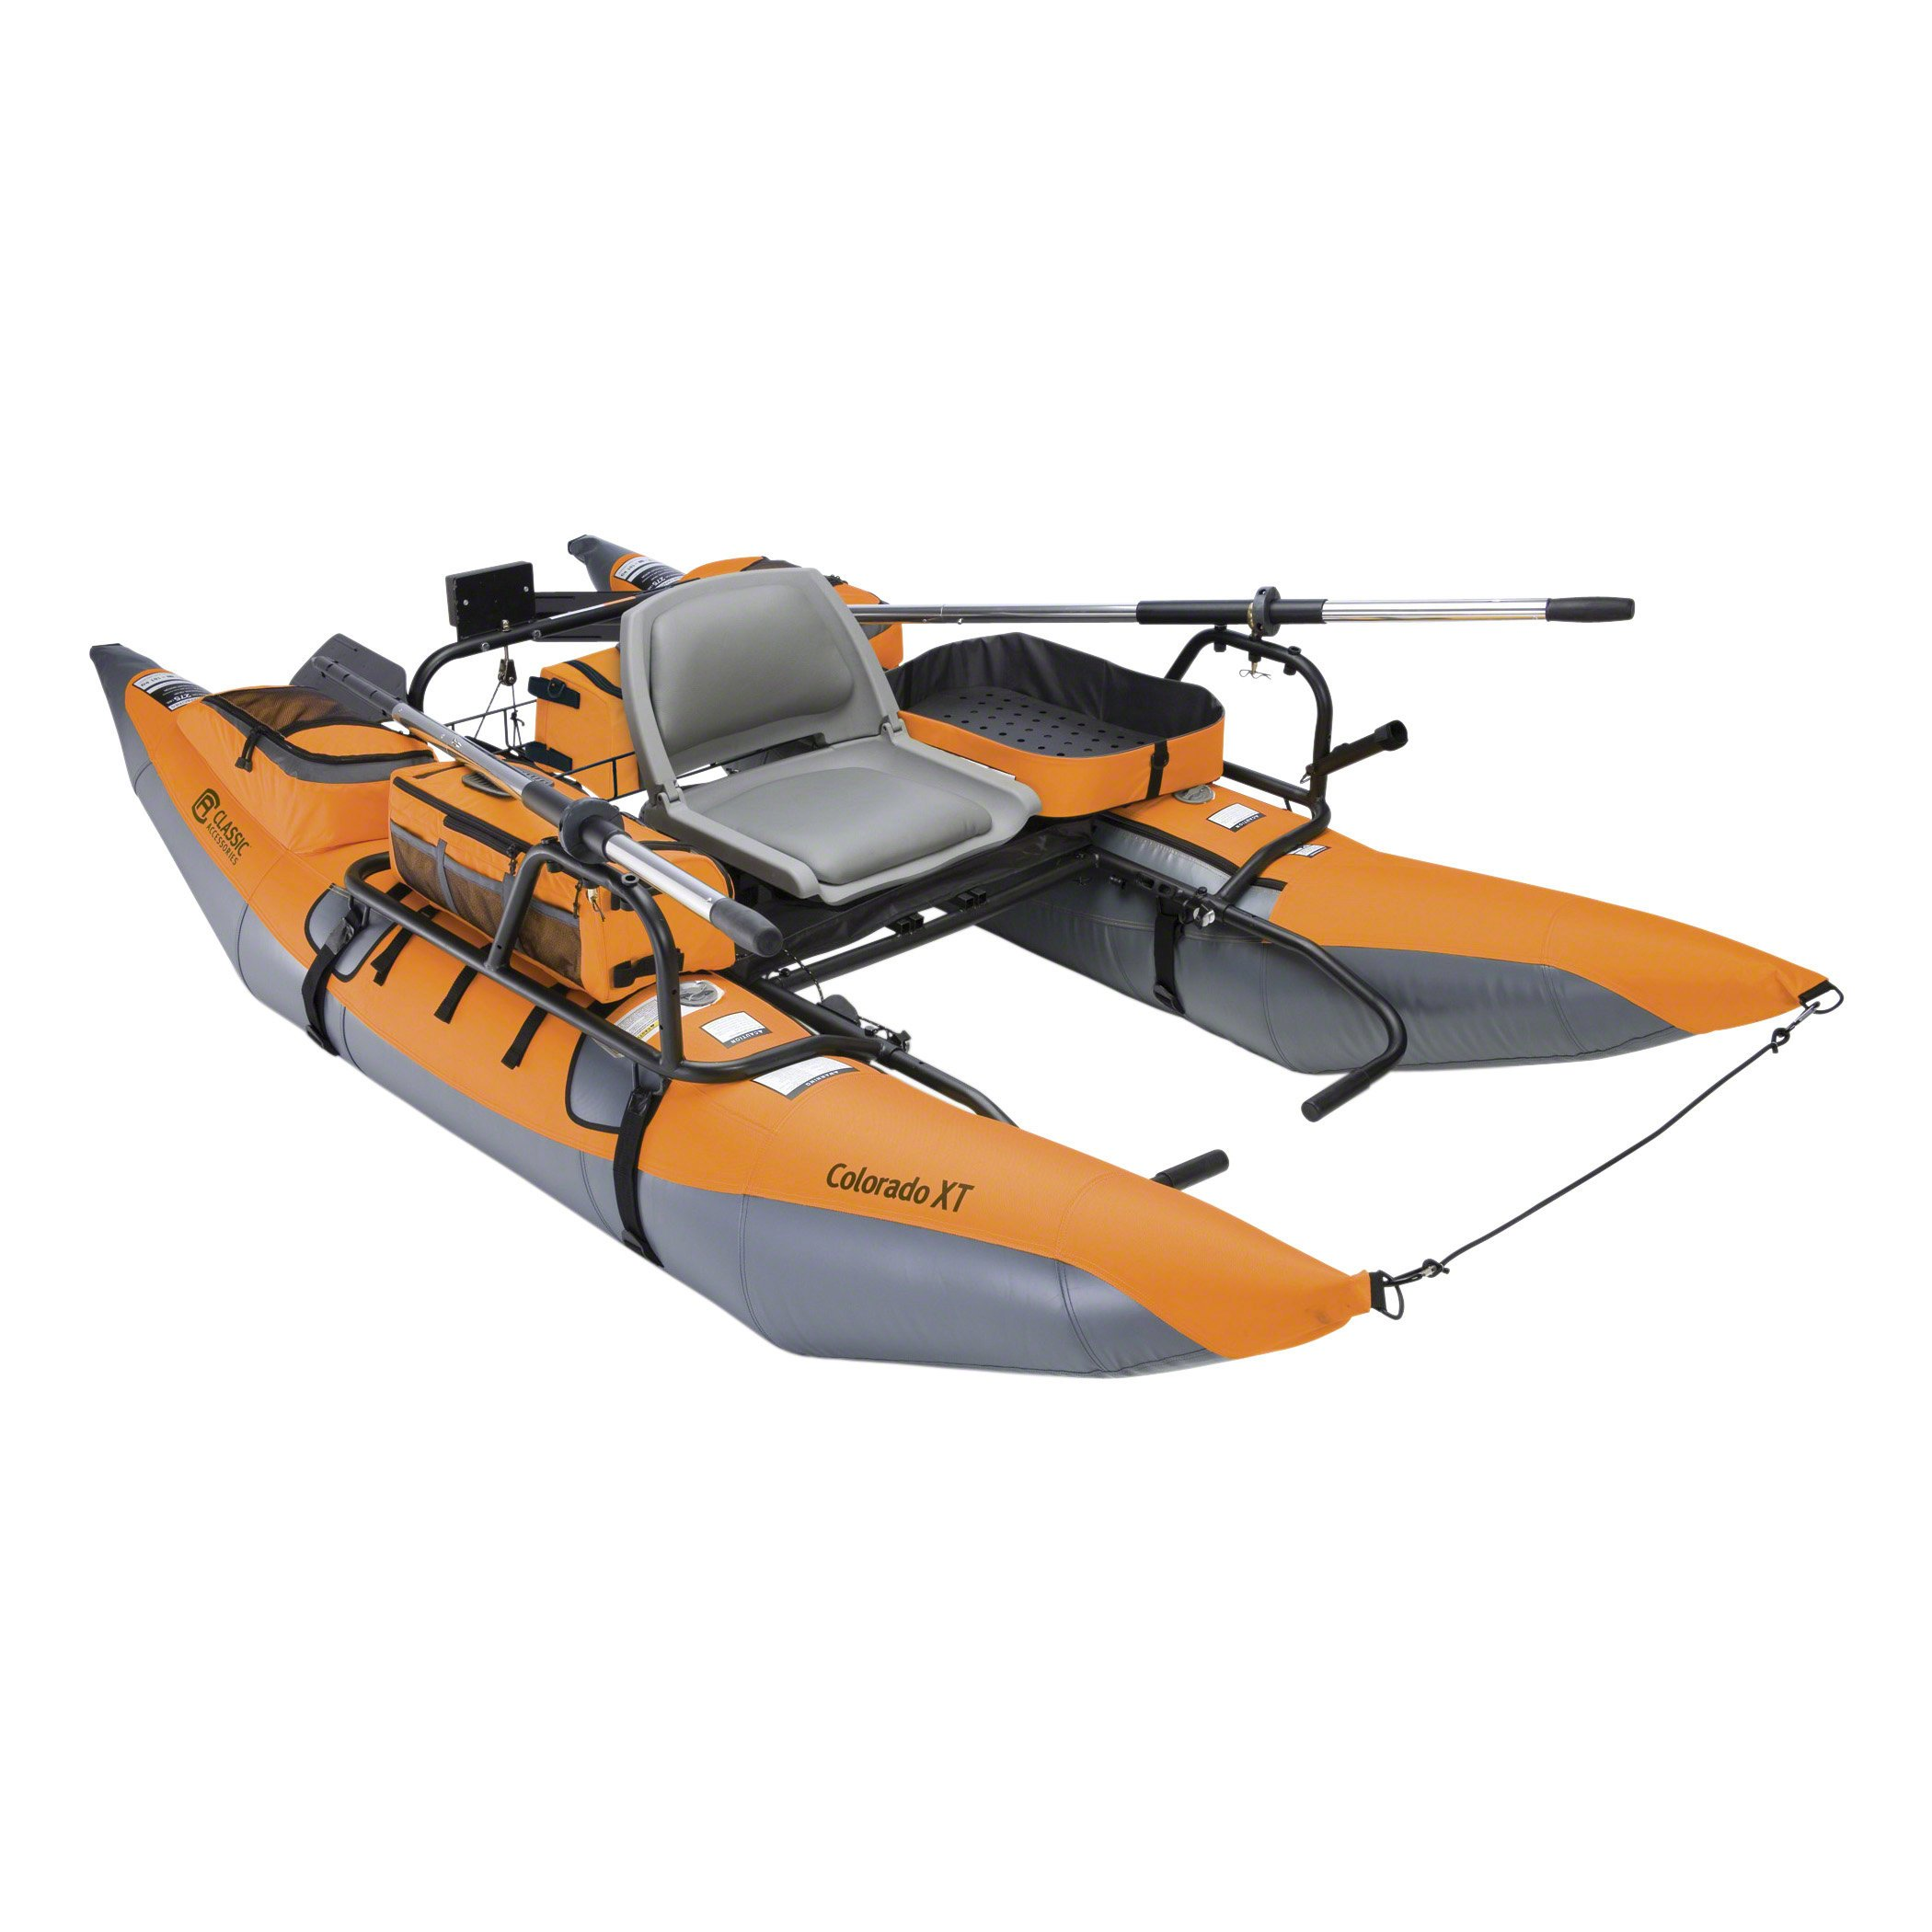 Classic Accessories Colorado XT Inflatable Fishing Pontoon Boat With Transport Wheel & Motor Mount, Pumpkin by Classic Accessories